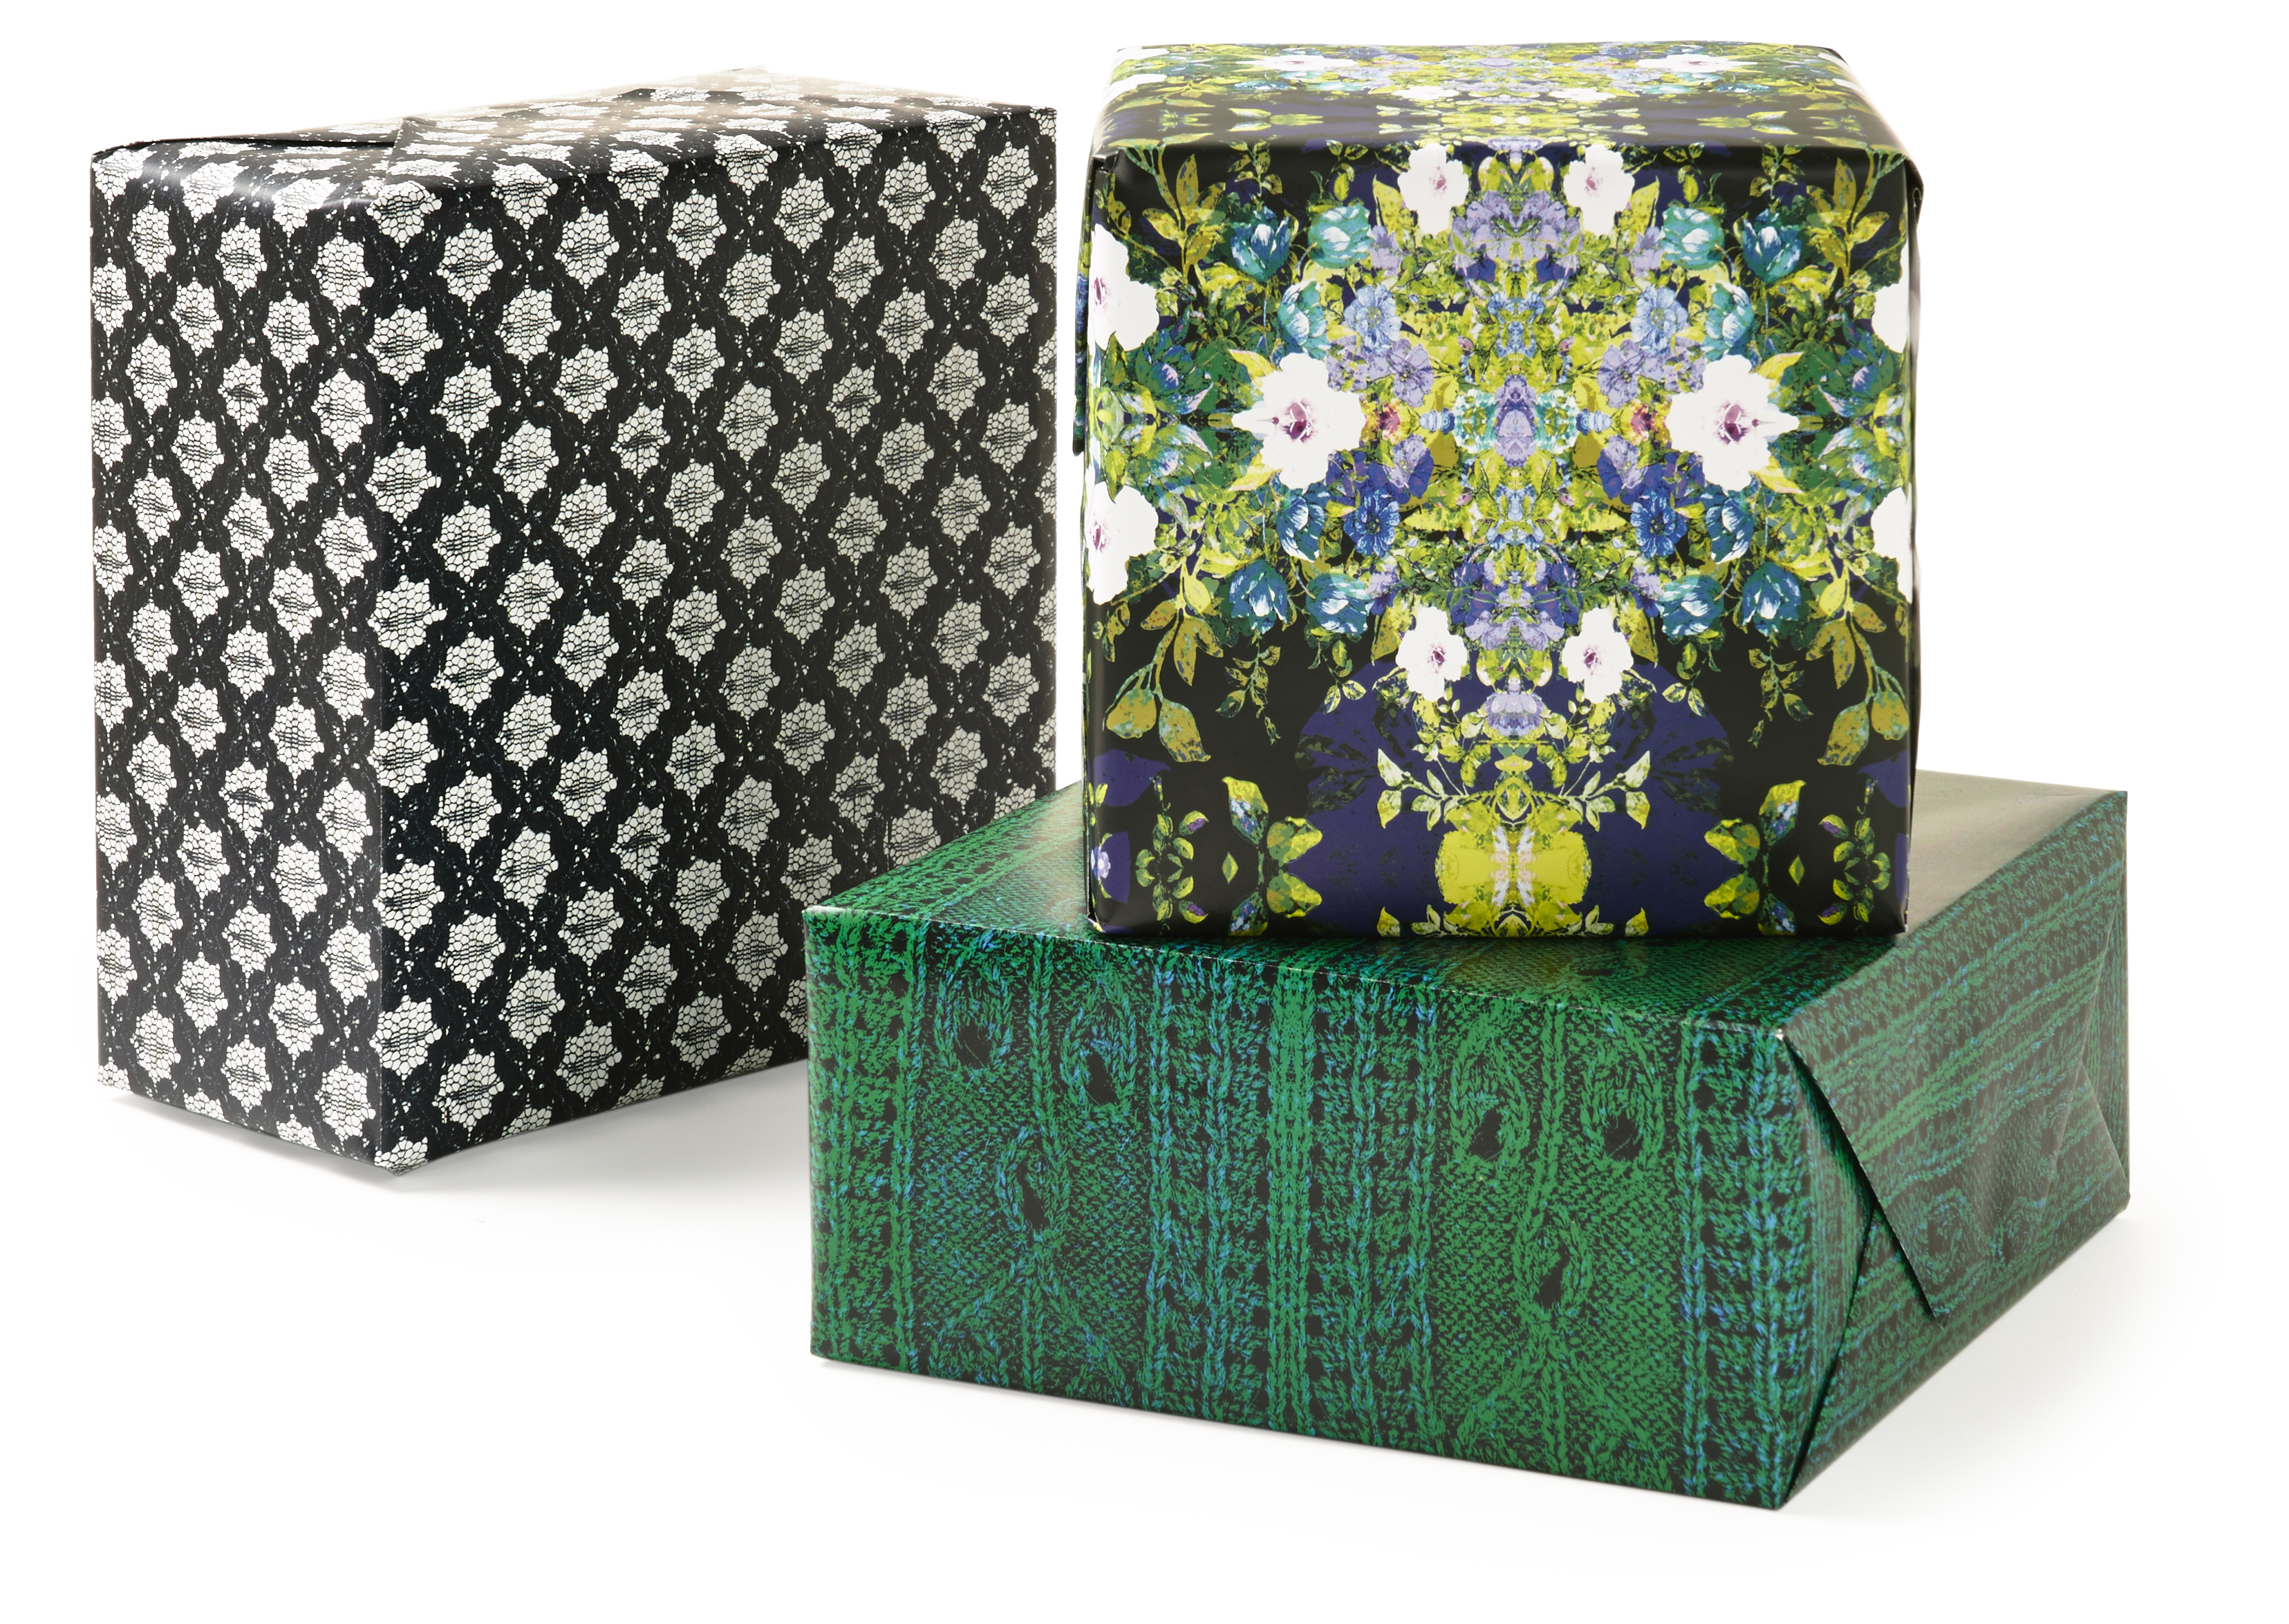 Designers create gift-wrap for charity with One Kings Lane